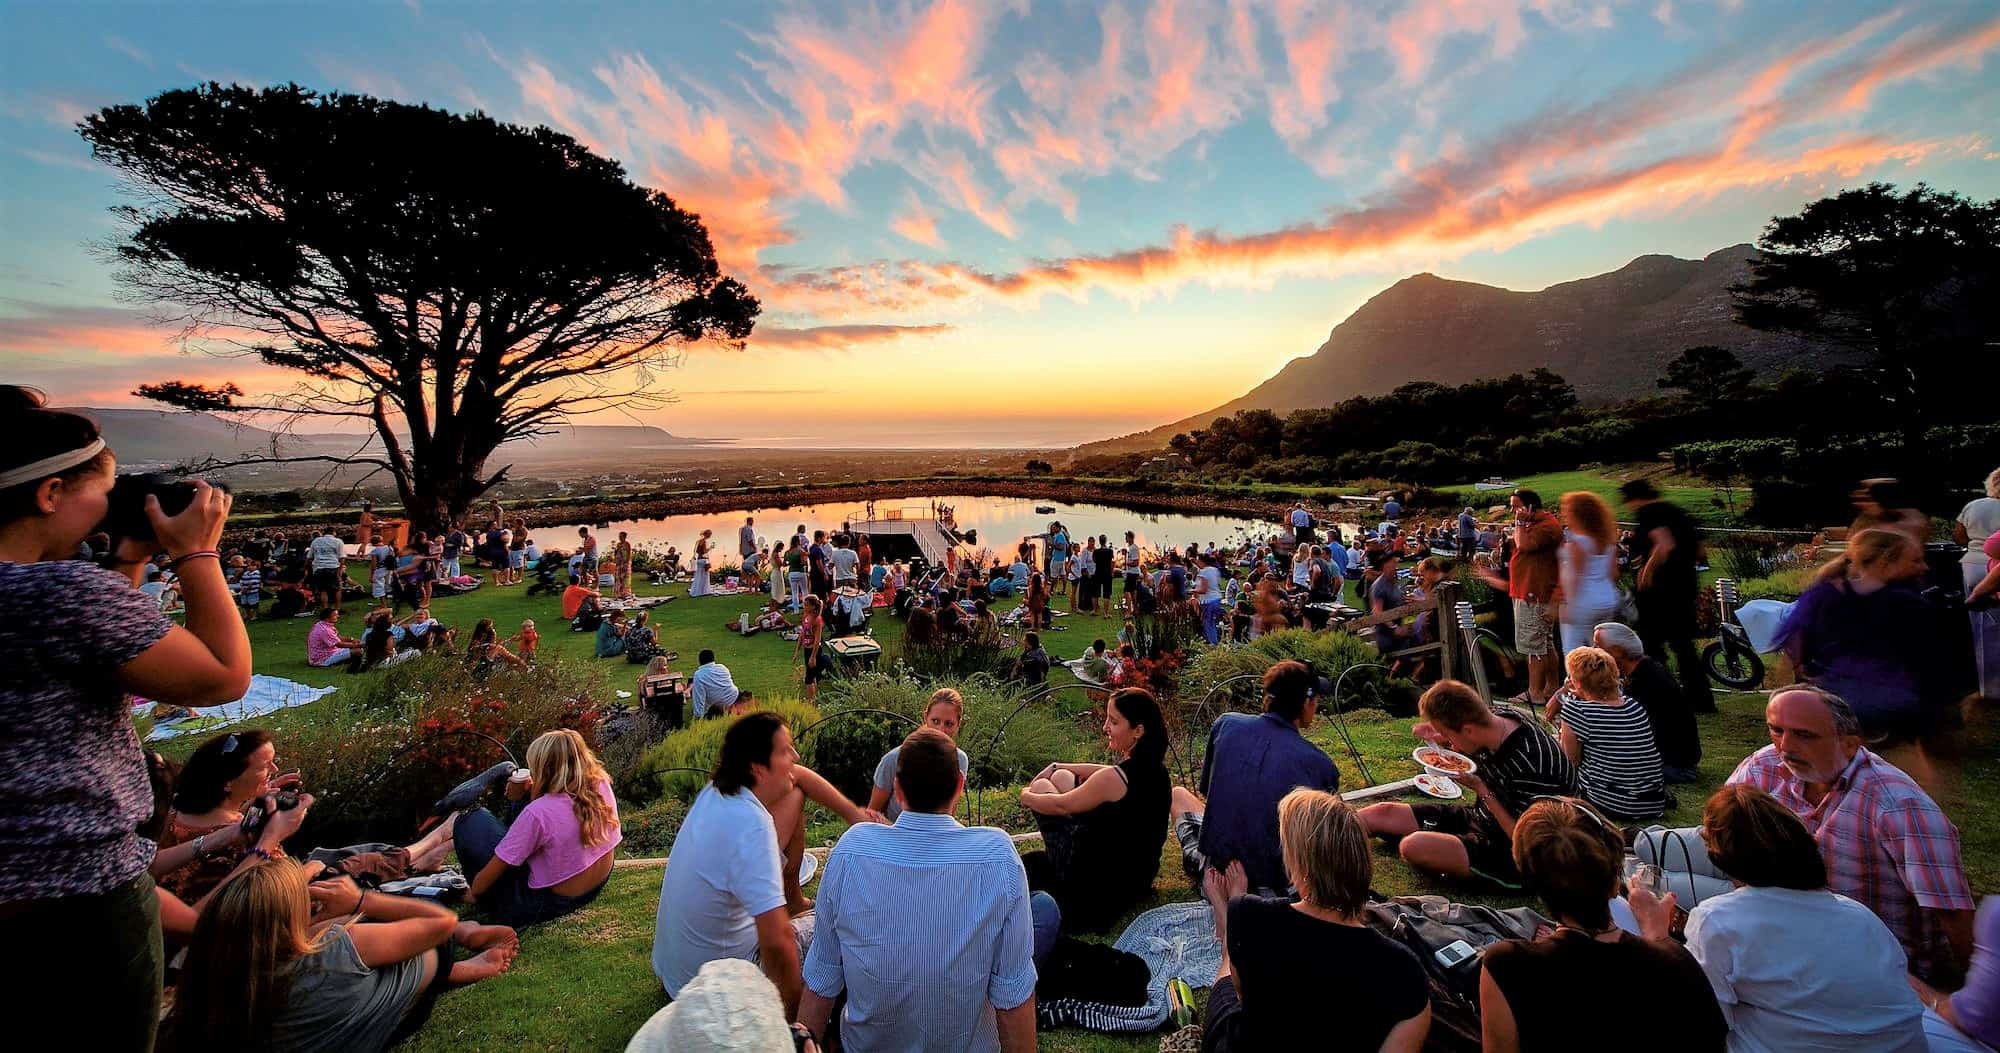 Sunset picnic at Cape Point Vineyards, Cape Town